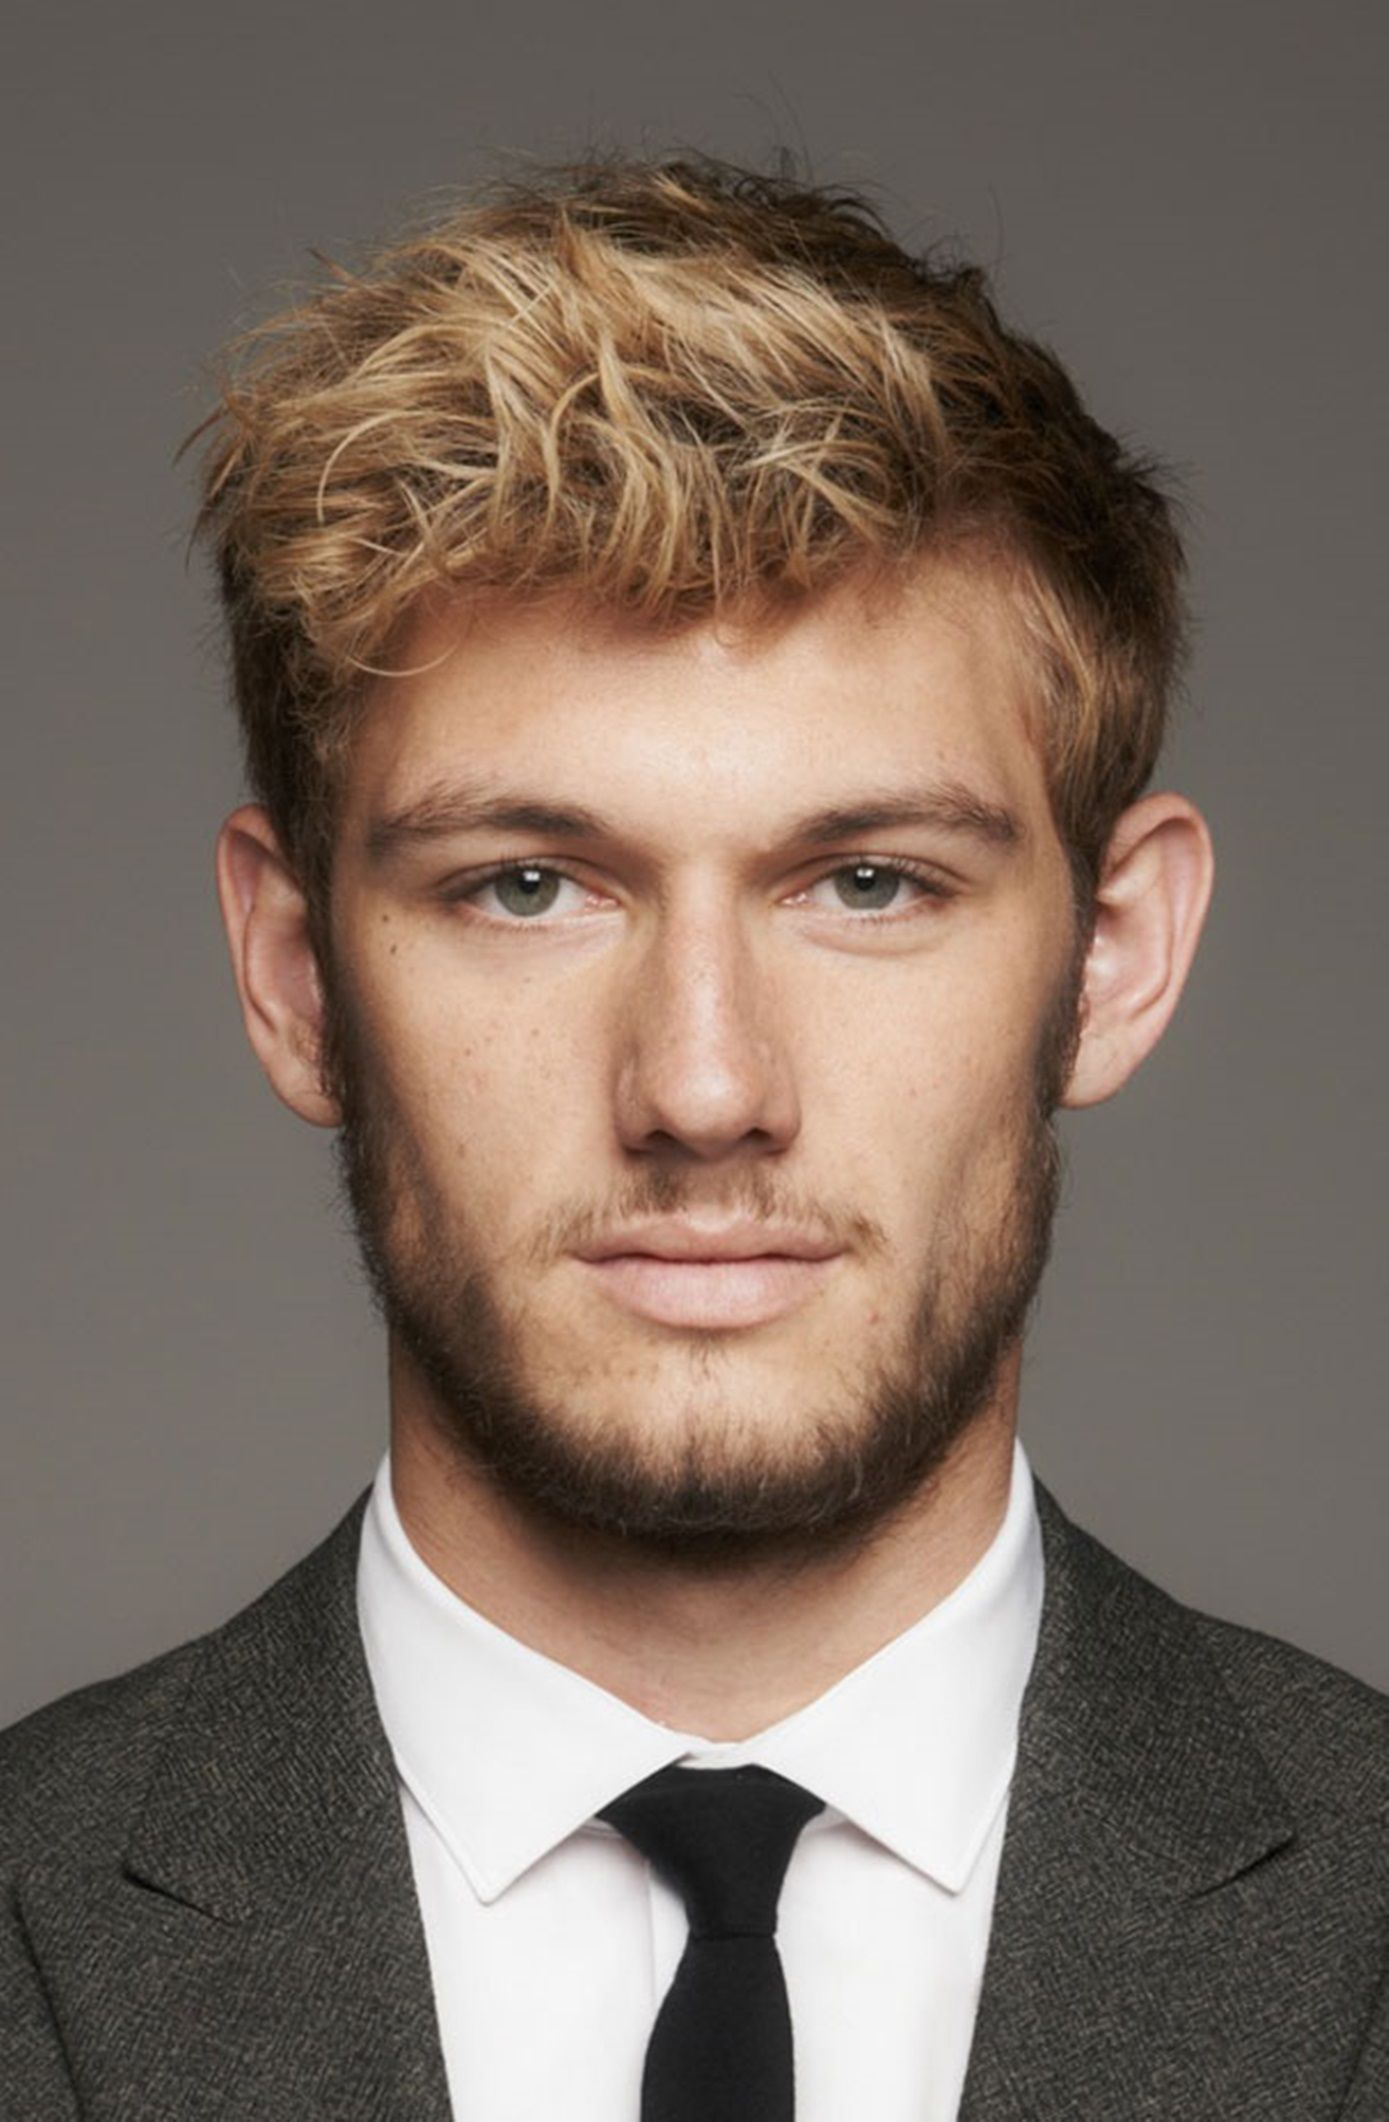 Alex Pettyfer good lord stop looking at me like that actually no